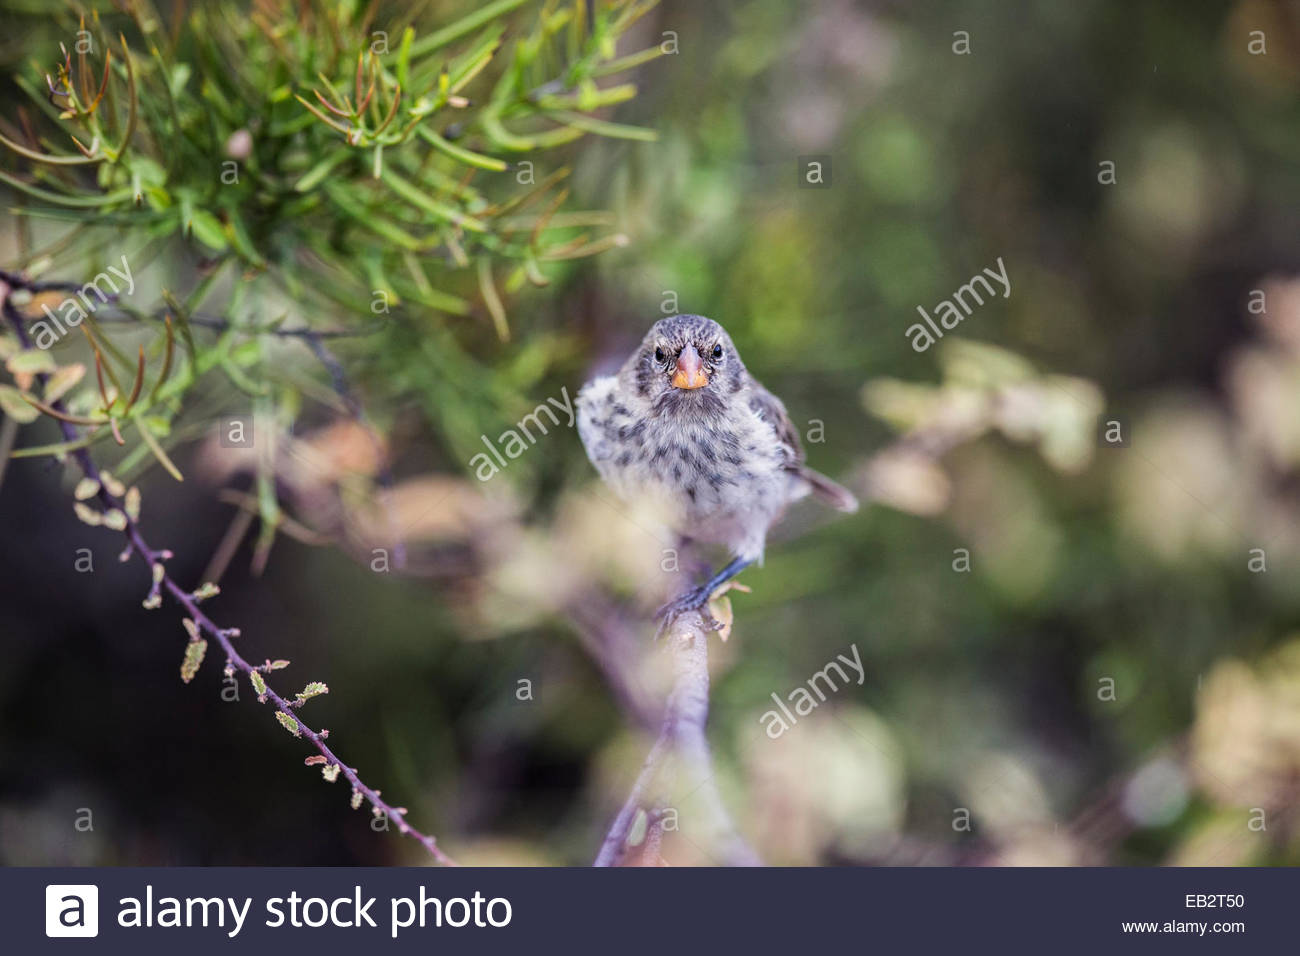 A Darwin finch in Galapagos National Park. - Stock Image